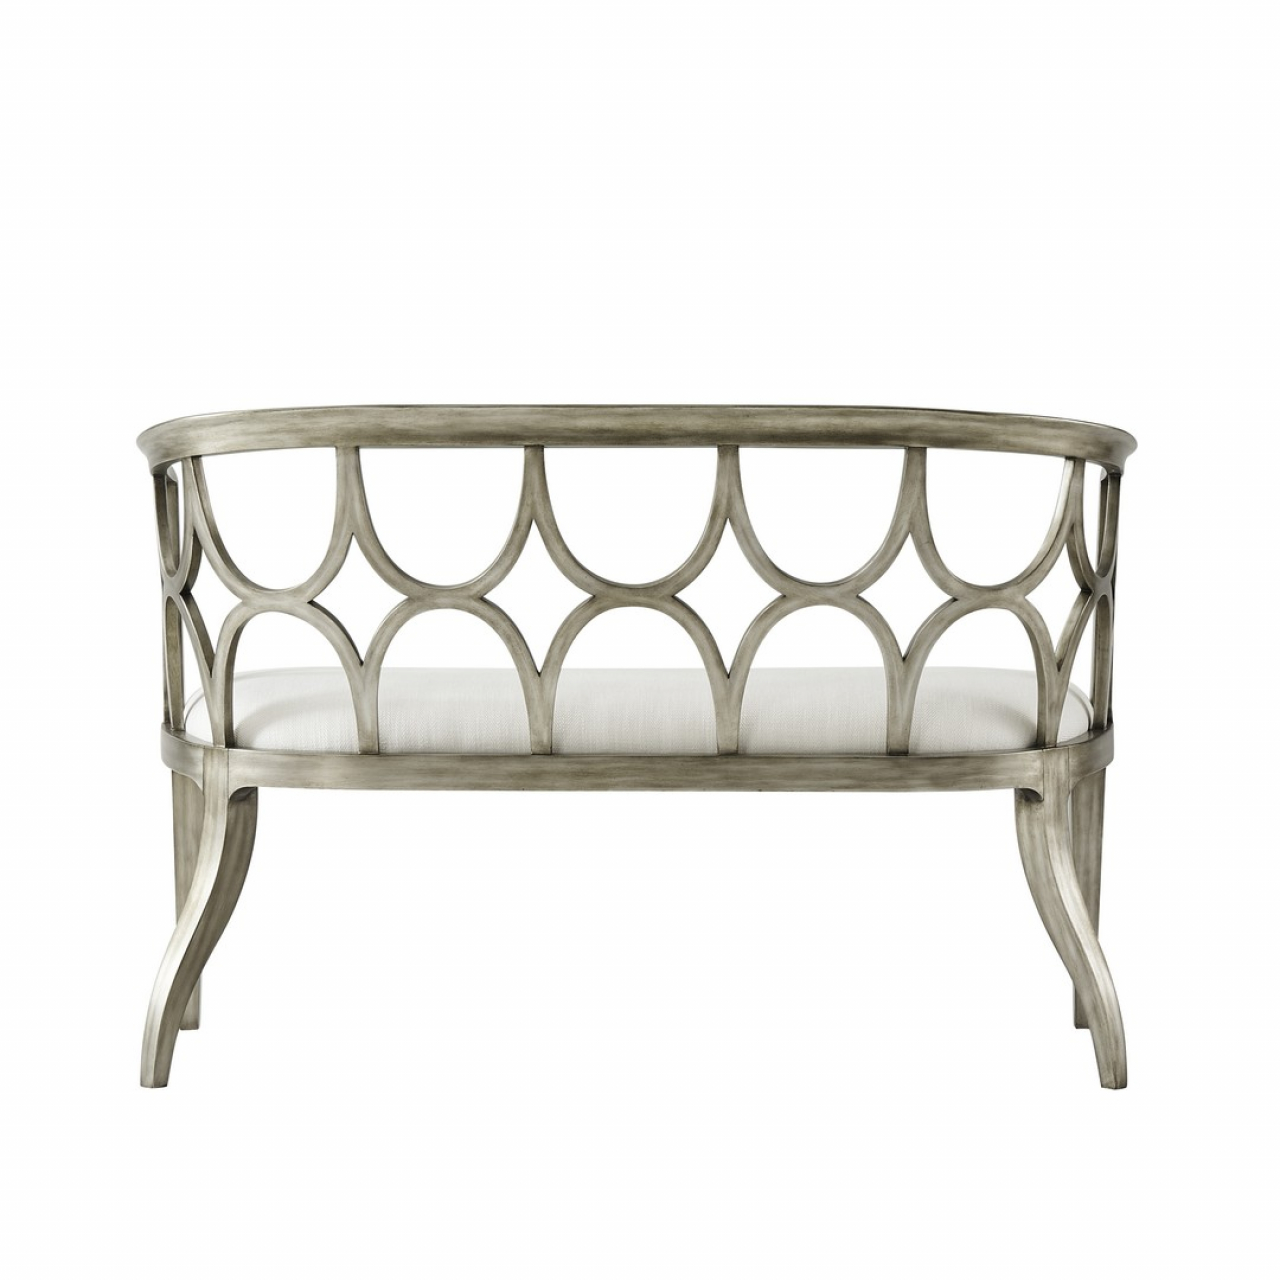 THEODORE ALEXANDER Connaught Settee